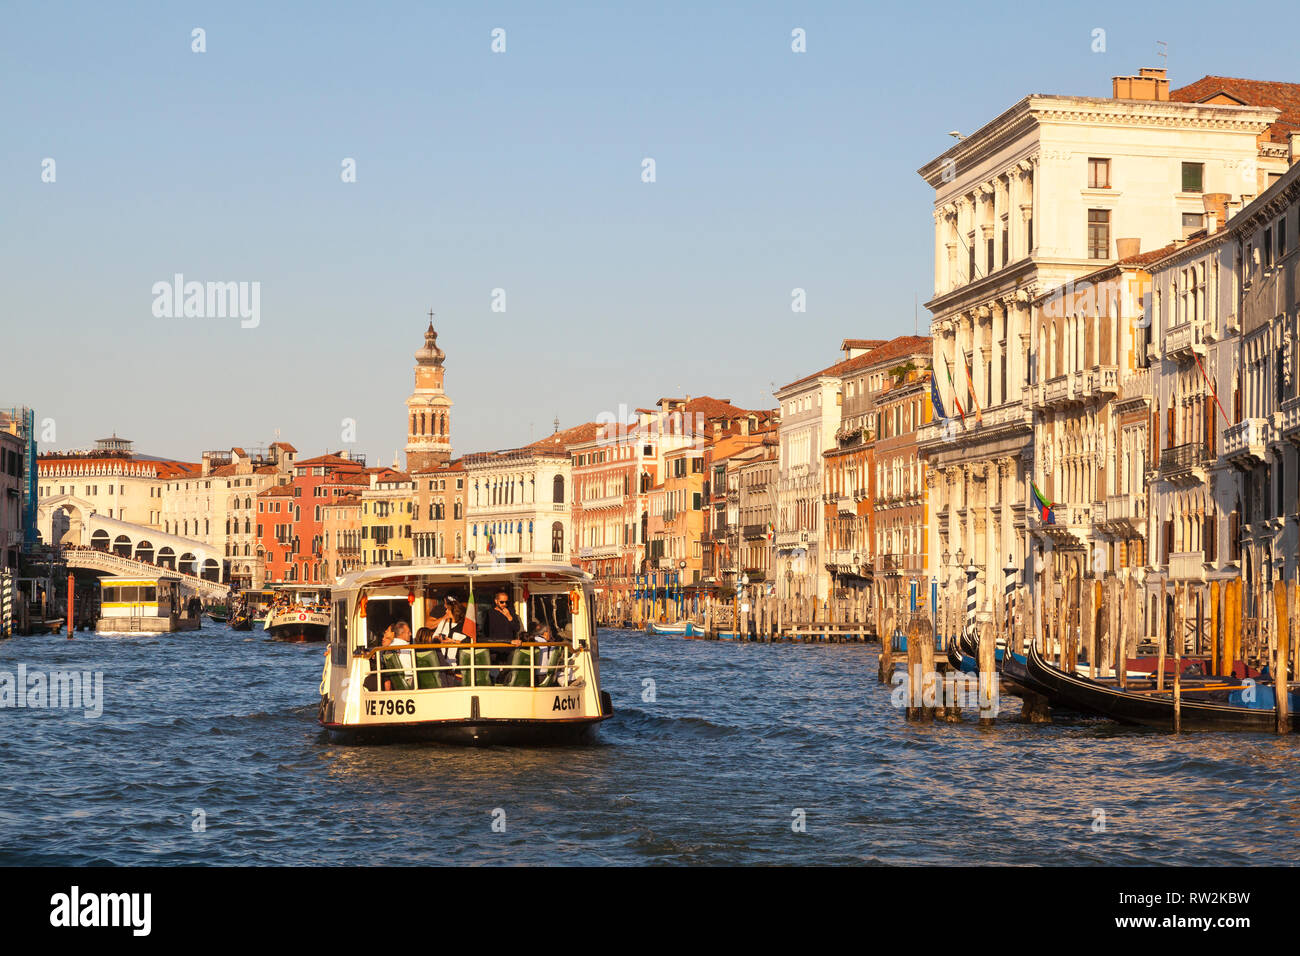 Vaporetto waterbus on the Grand Canal at sunset, Venice, Veneto, Italy with a view past ancient palazzos, palaces, to the Rialto Bridge - Stock Image